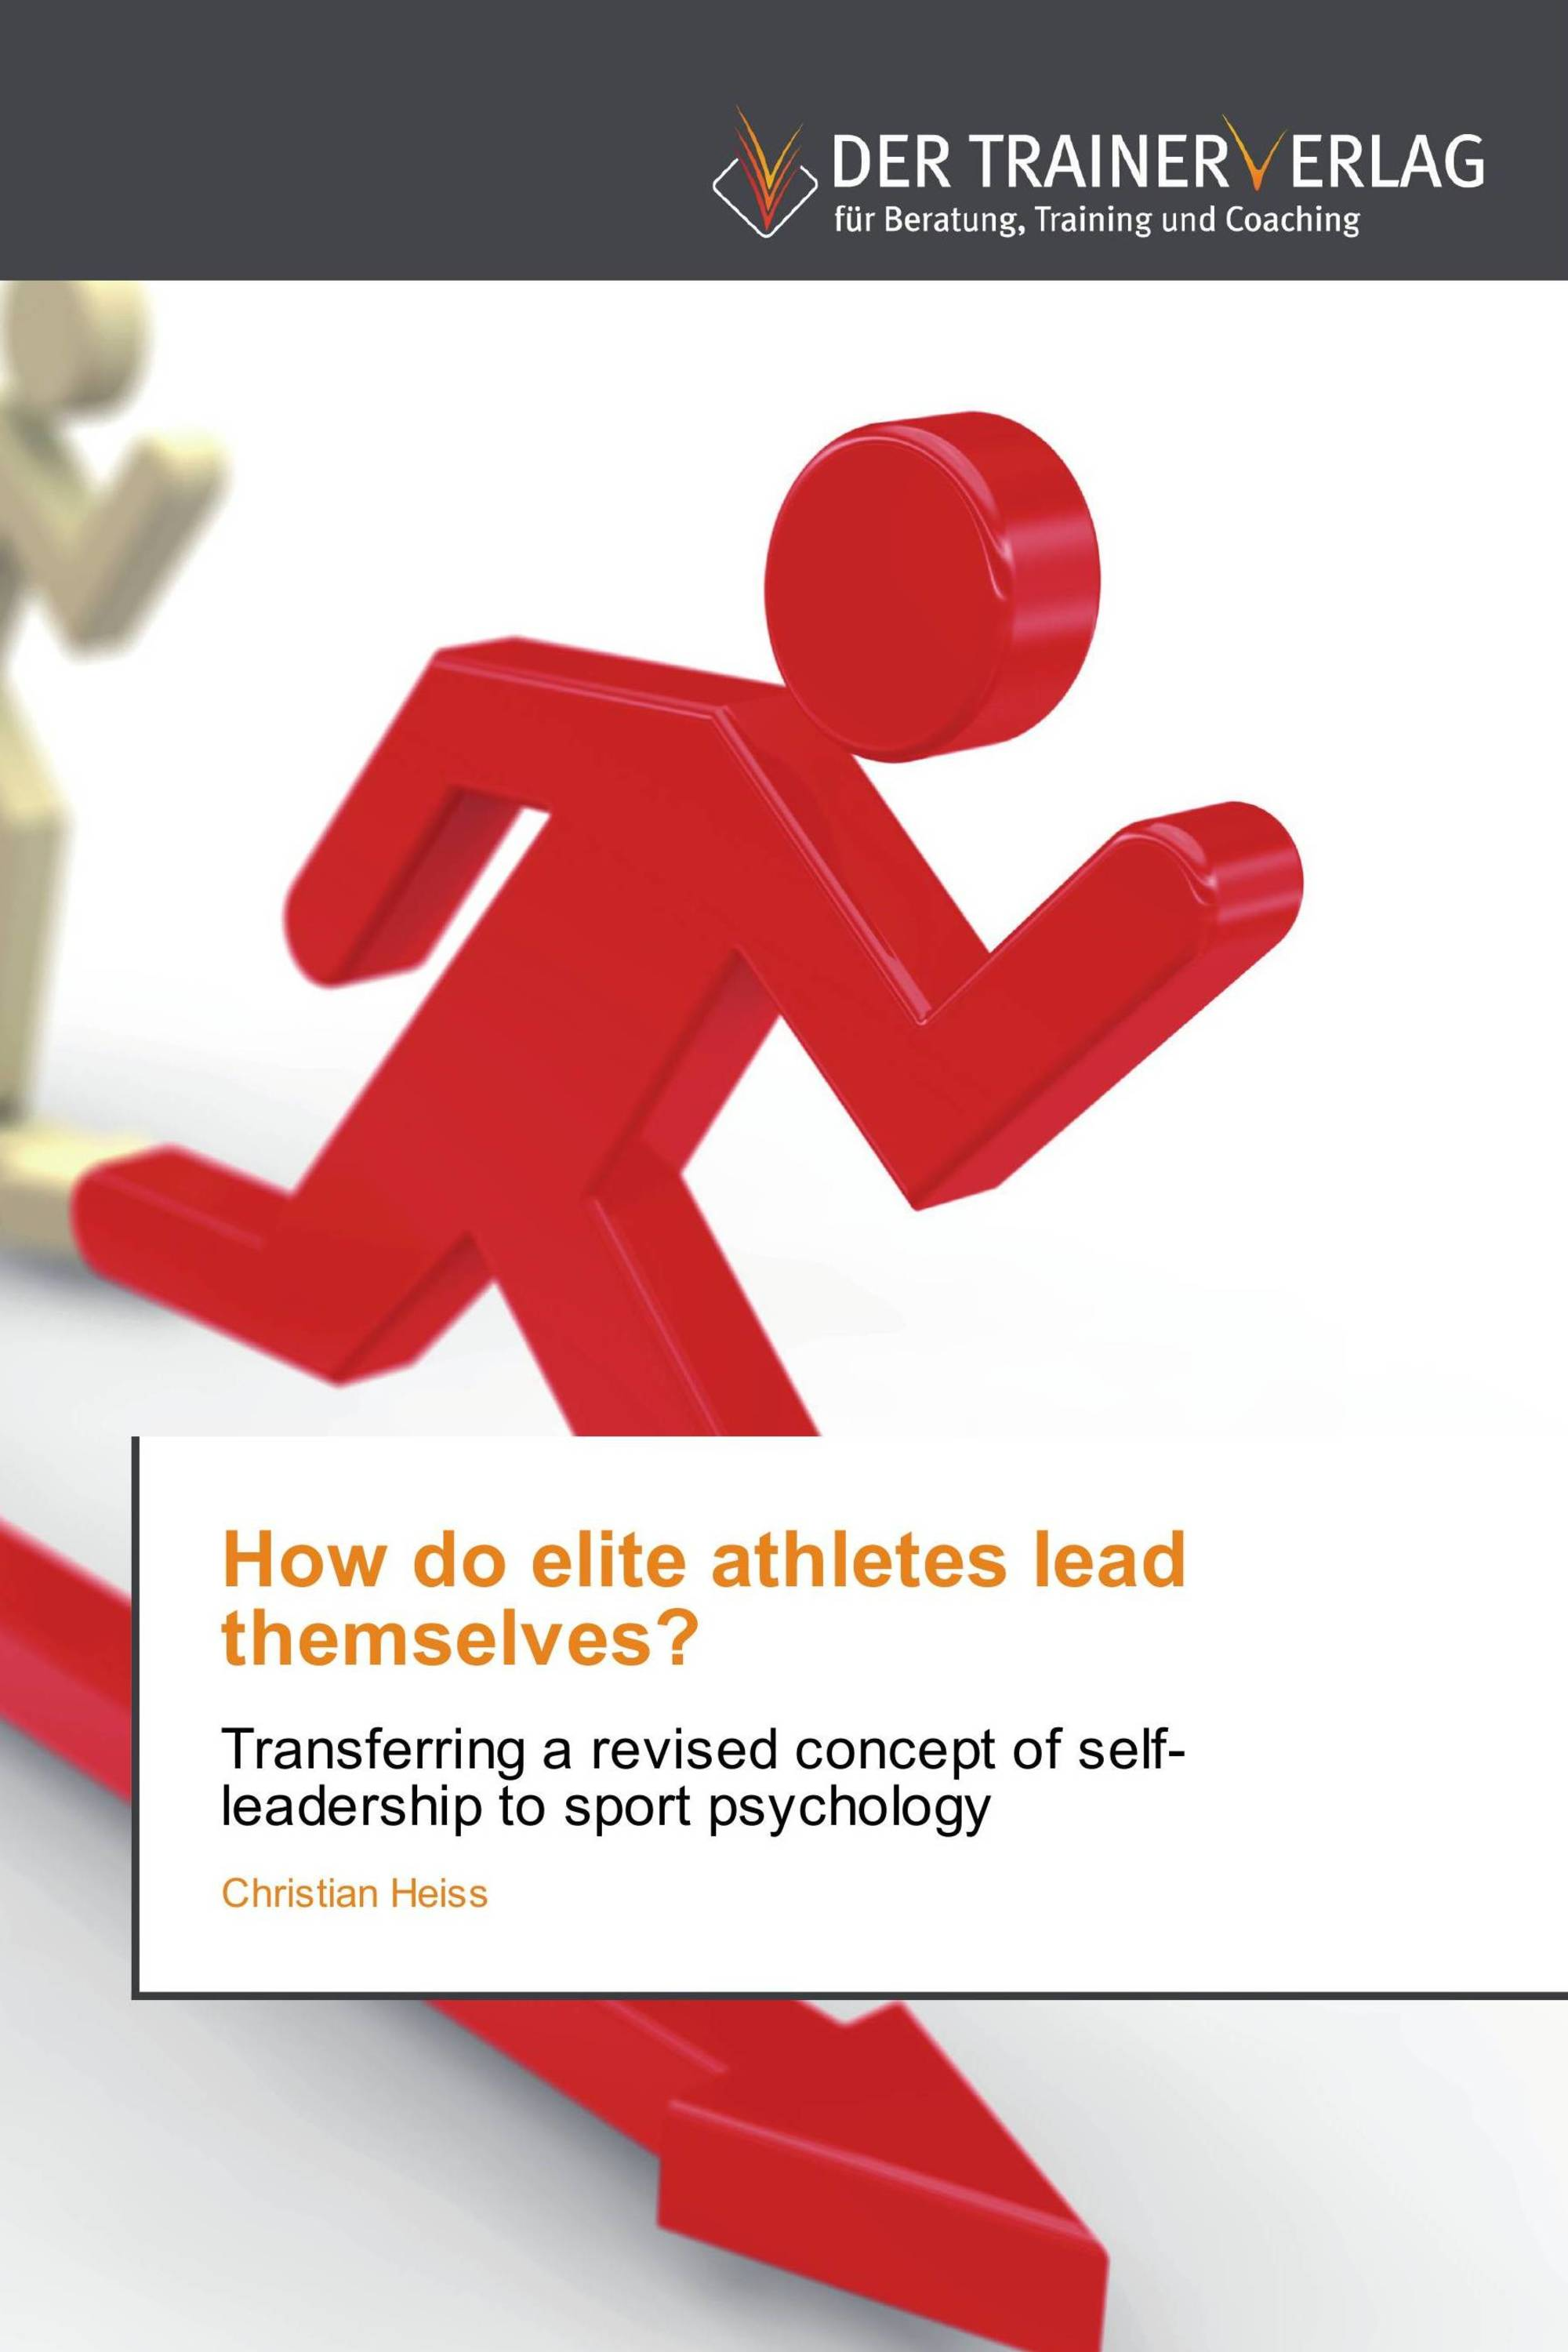 How do elite athletes lead themselves?